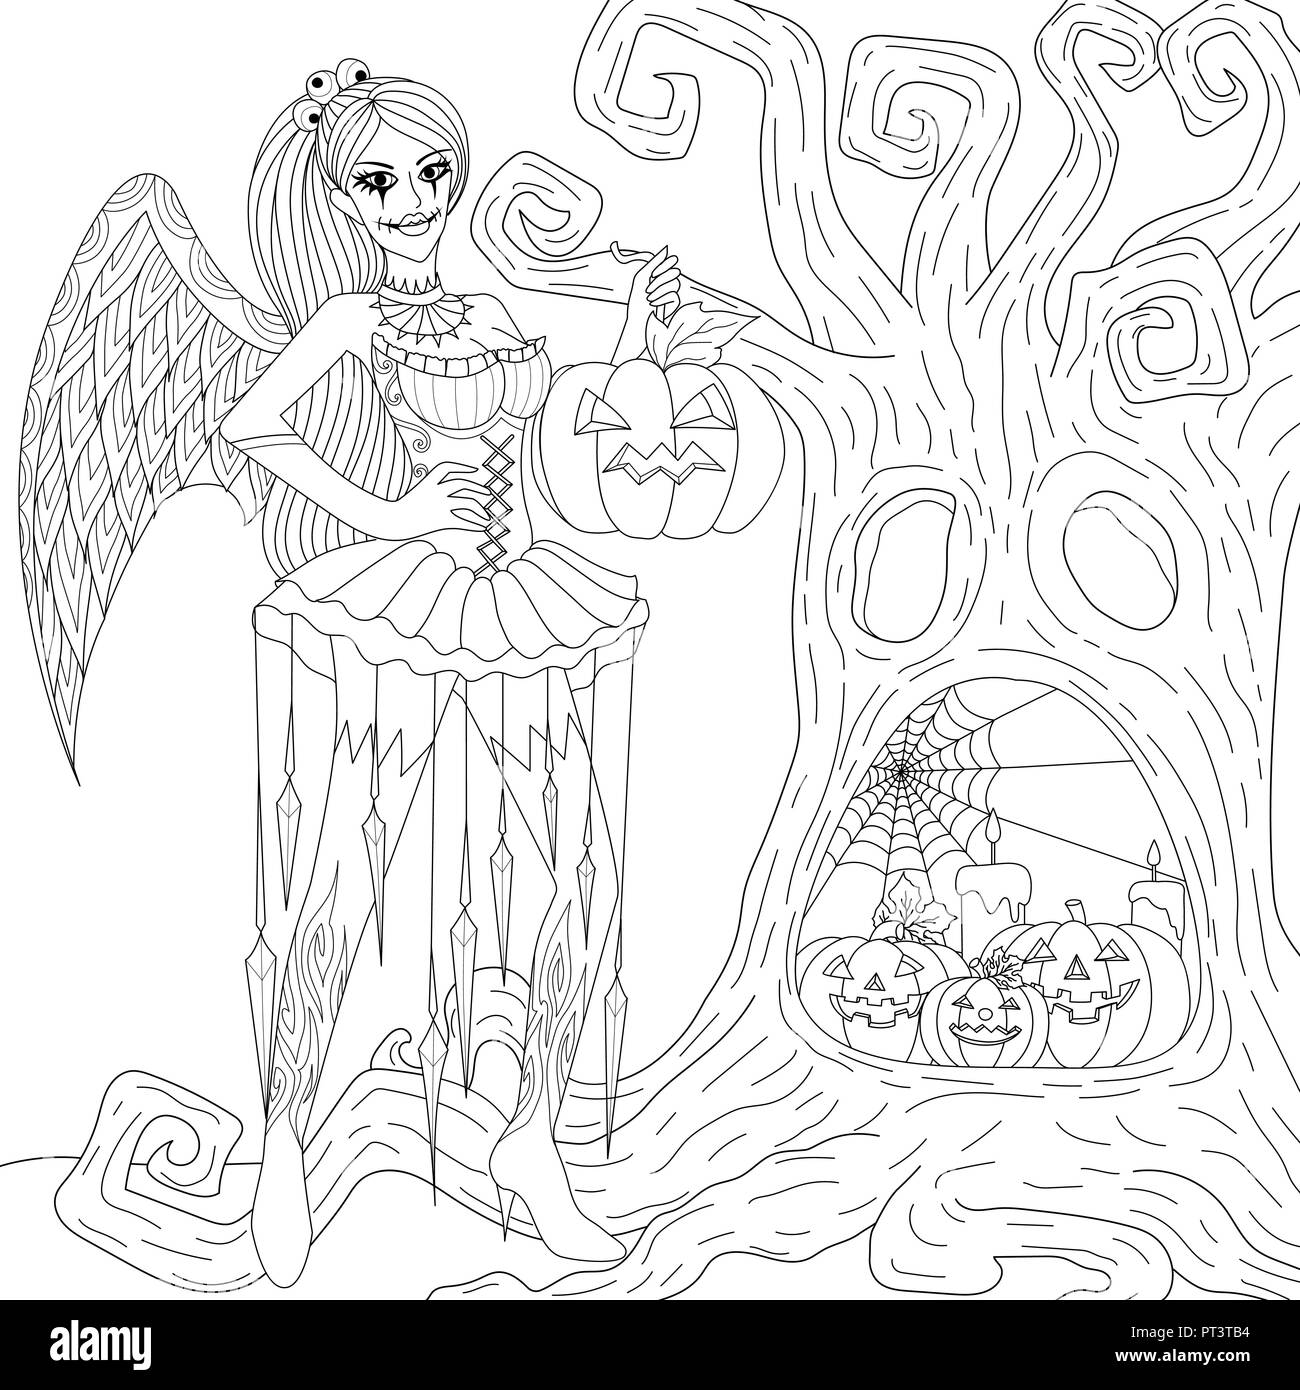 - Halloween Coloring Pages. Coloring Book For Adults. Gothic Girl